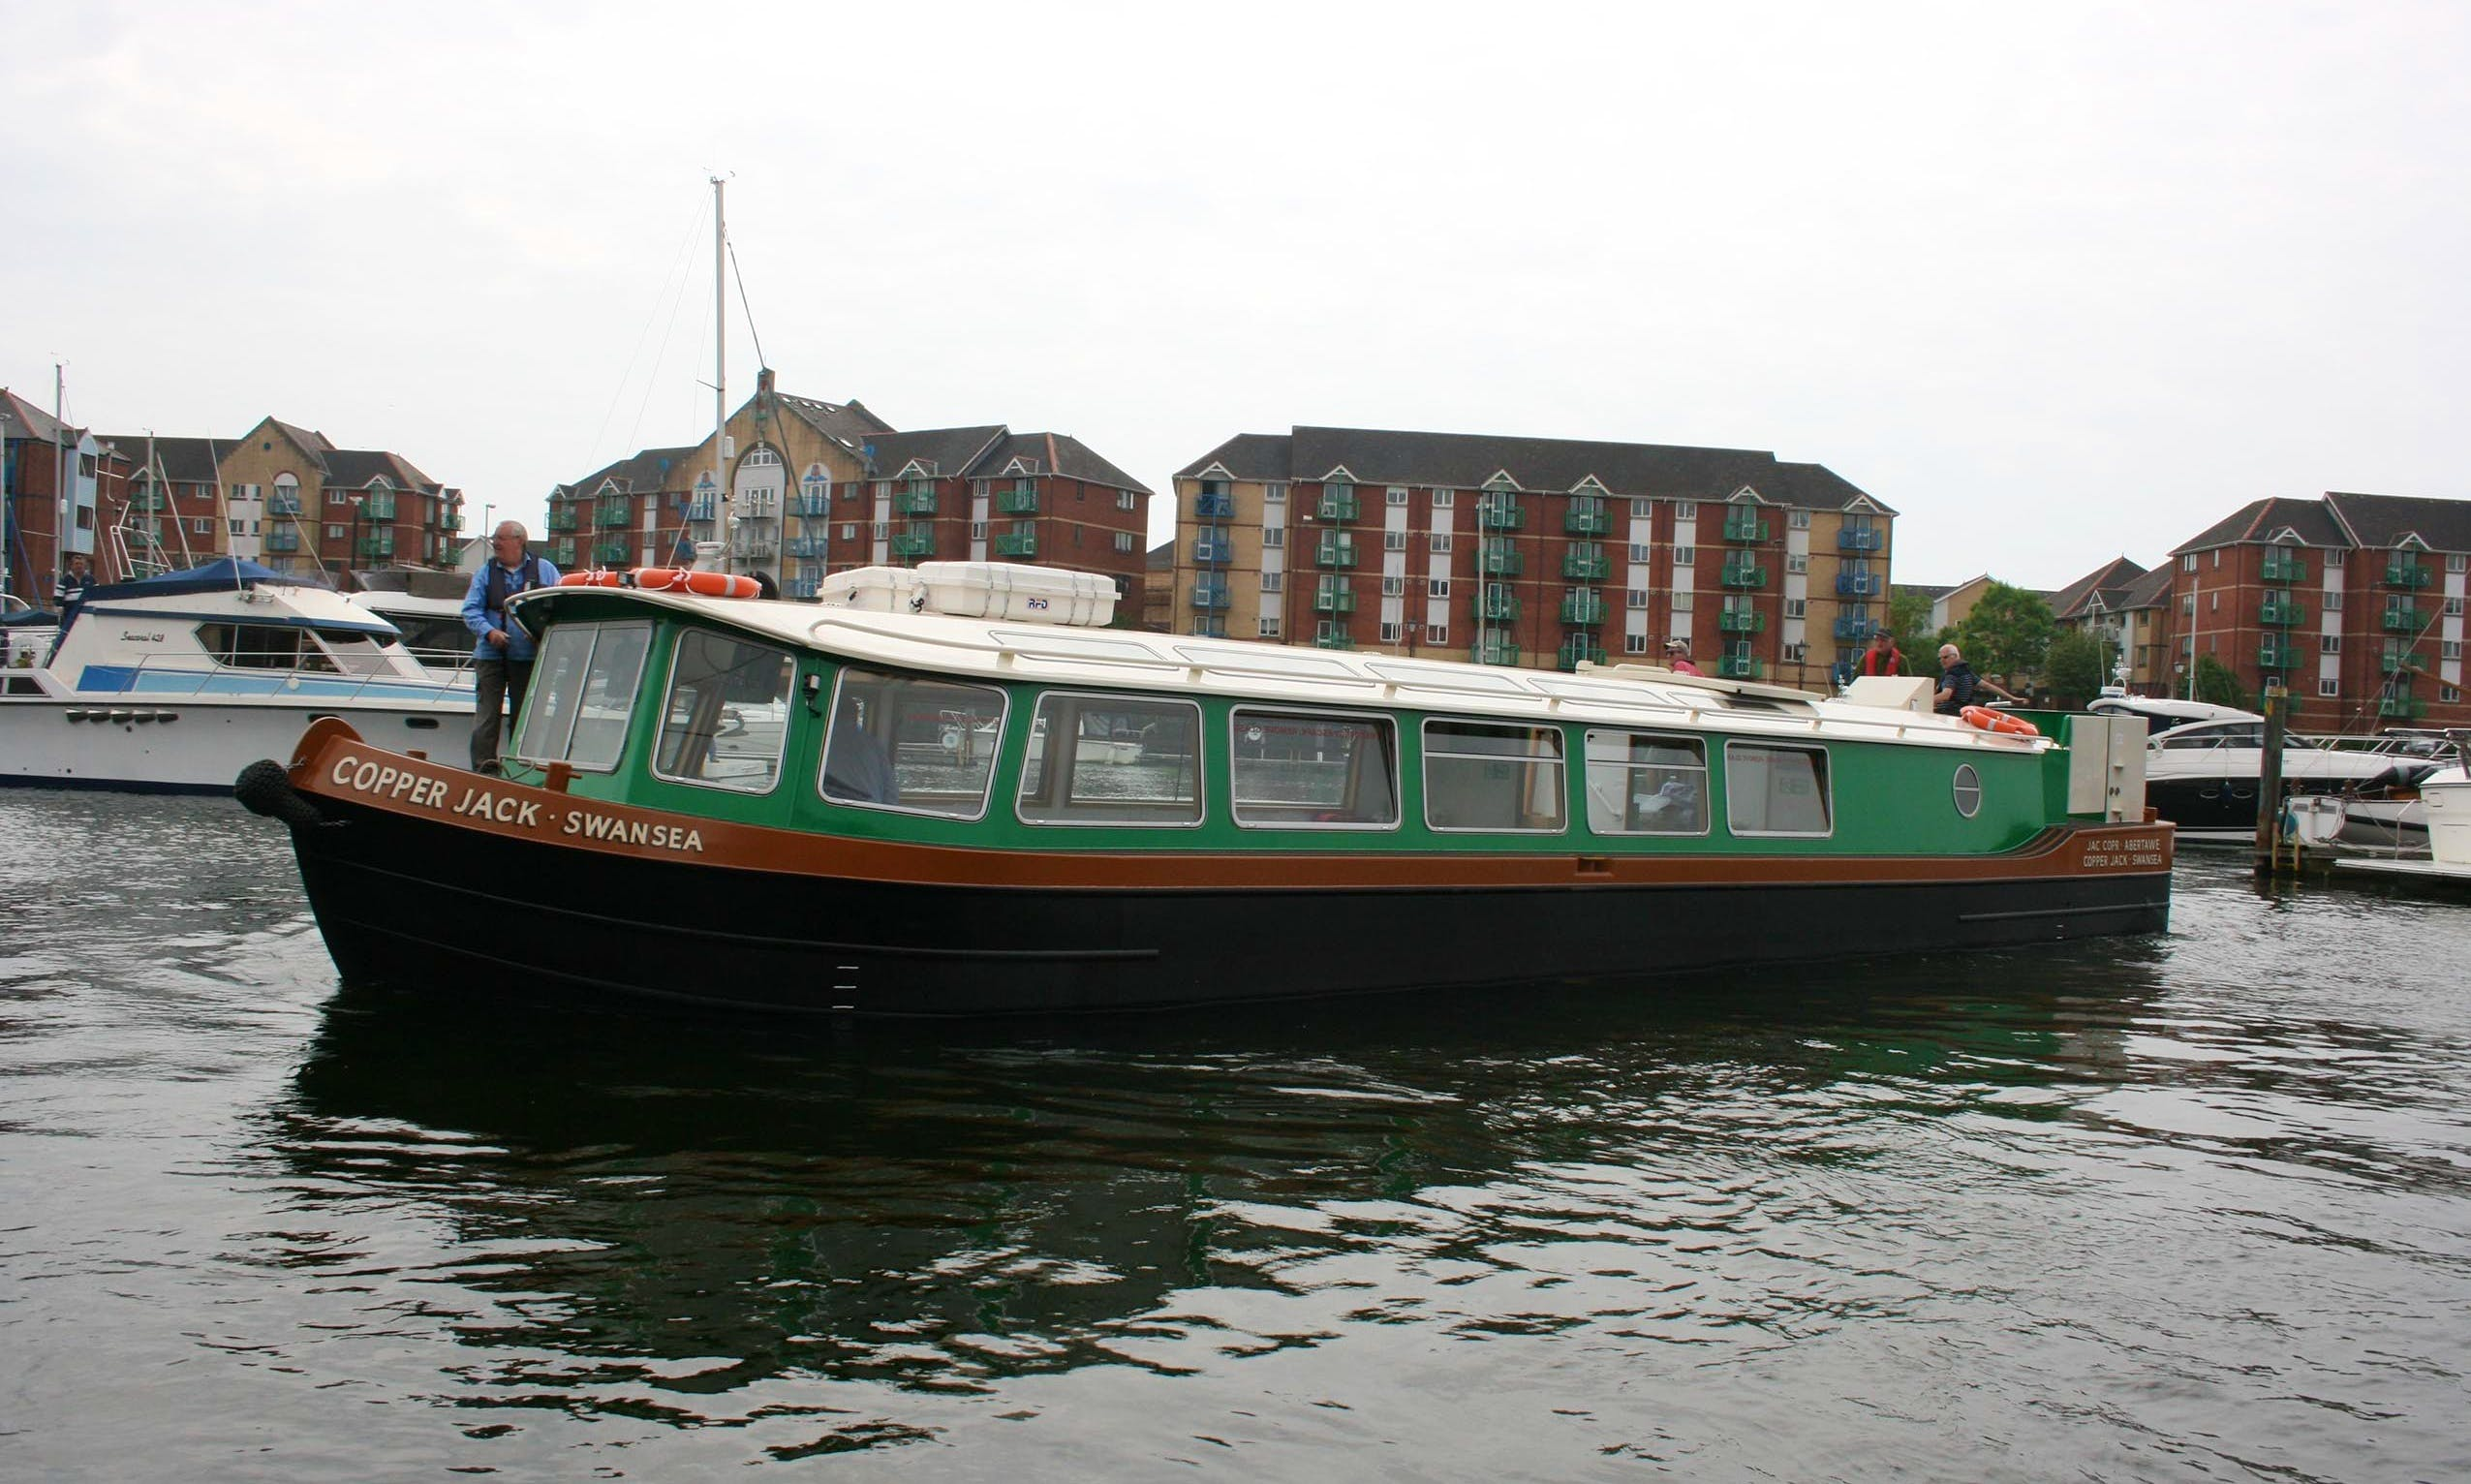 Boat Cruises in Swansea